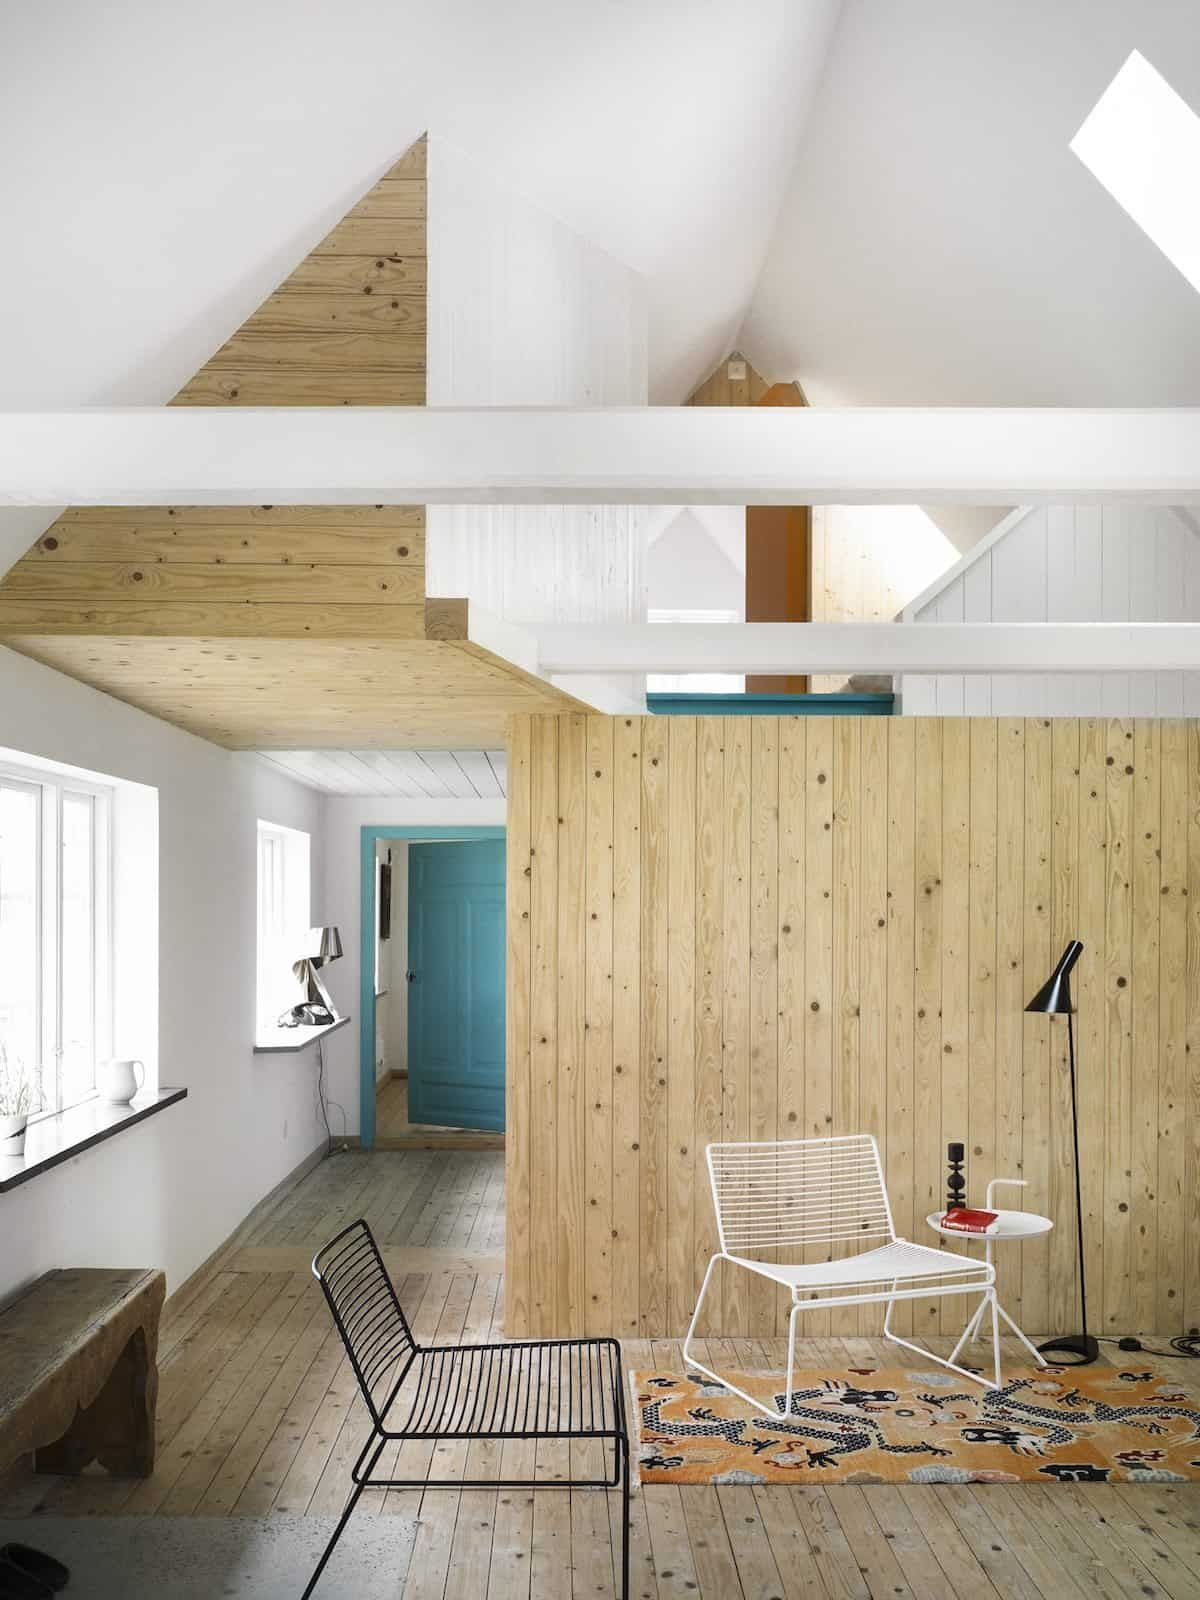 The cheery swedish summer season cottage by lasc studio is a fresh and fun modern day dream residence embracing modest scandinavian style located in skåne